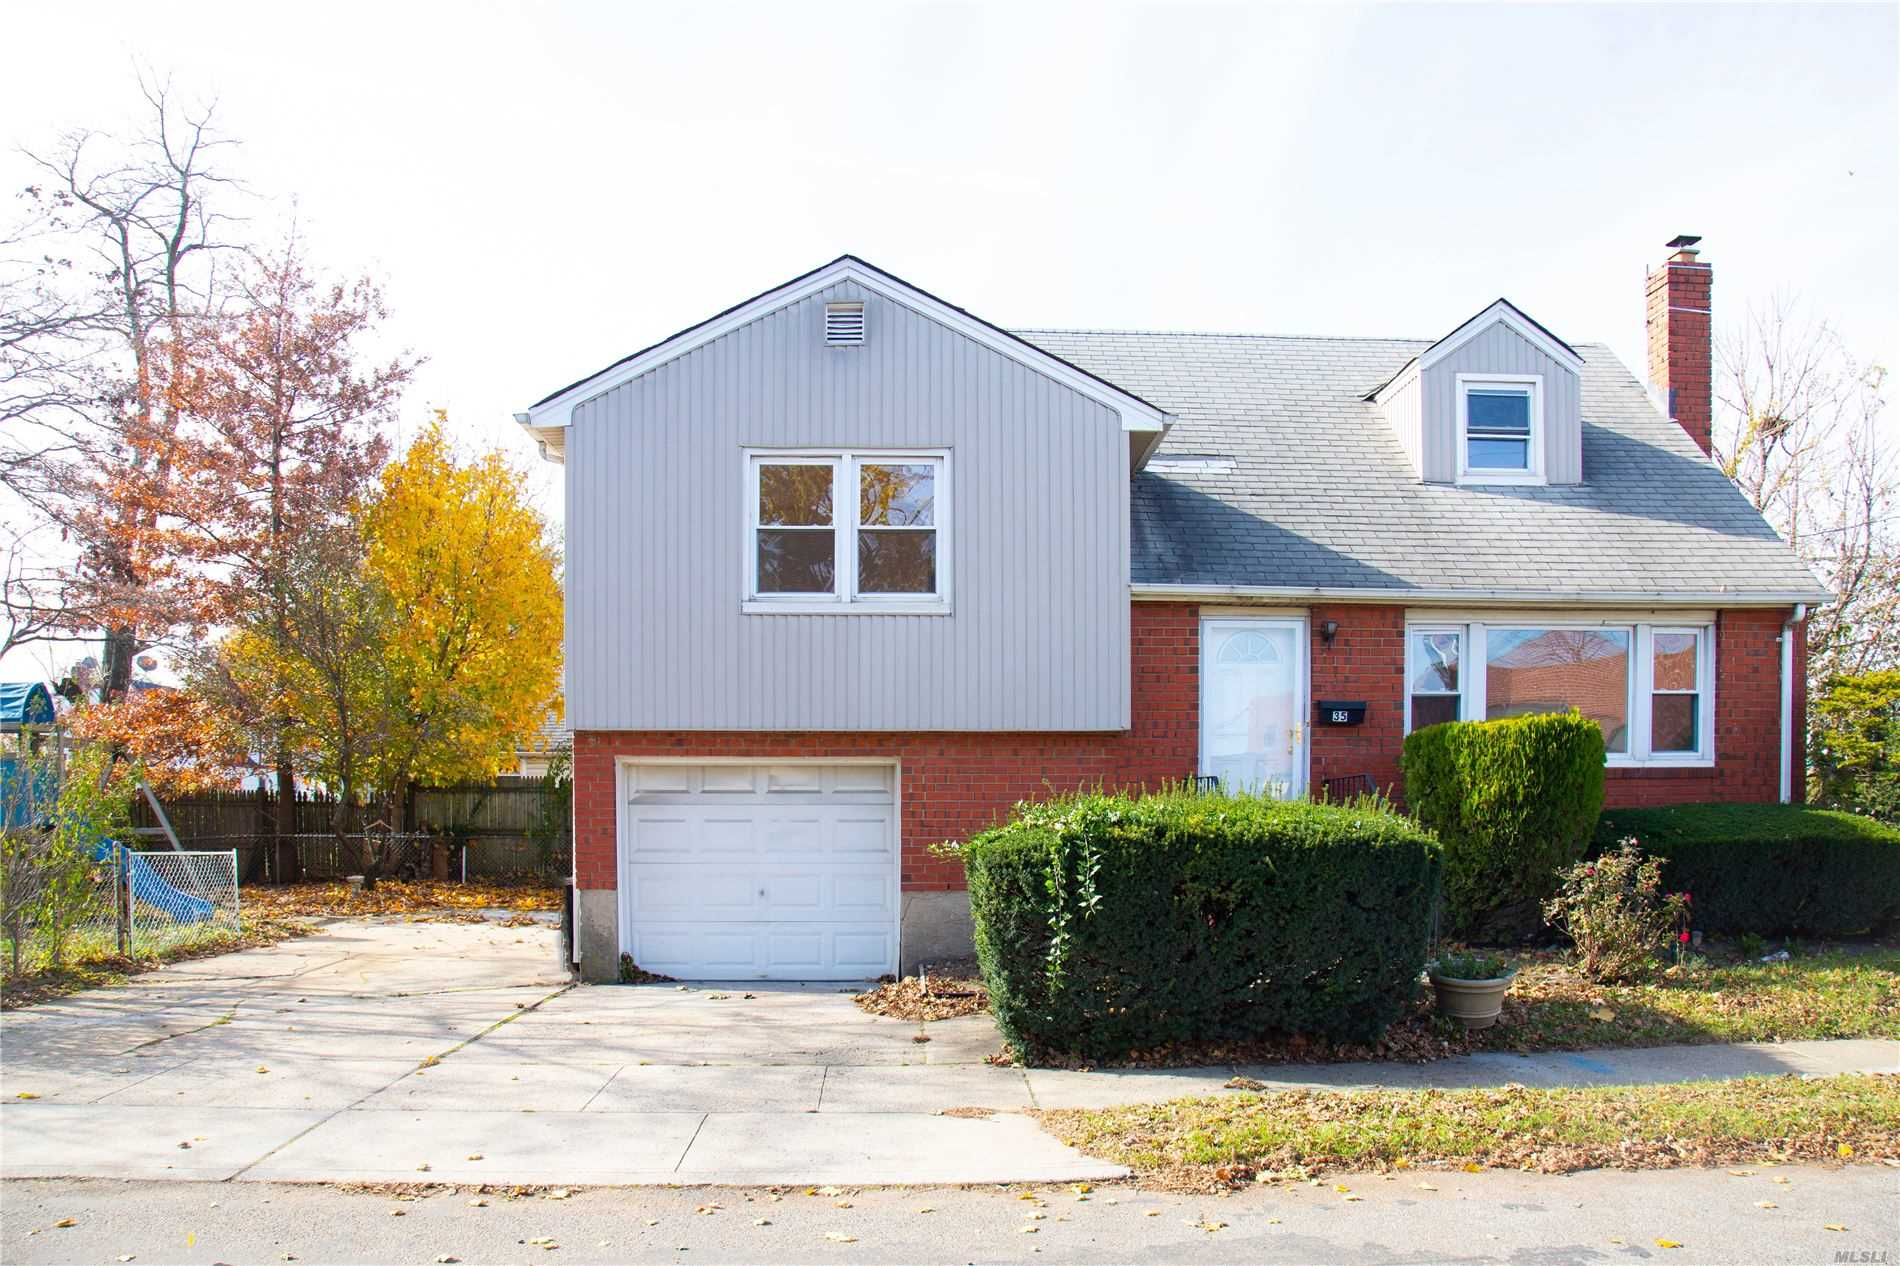 Welcome To This Move-in Ready Charming Split. Almost New, Totally Renovated, Bright, Spacious, Open Floor Plan, Attached garage, Lot Of Storage, Possible Use as Mother-Daughter With Permits. Convenient location, Close to transportation and shopping!! Close to LIRR. Come See It Today Before It's Gone!!